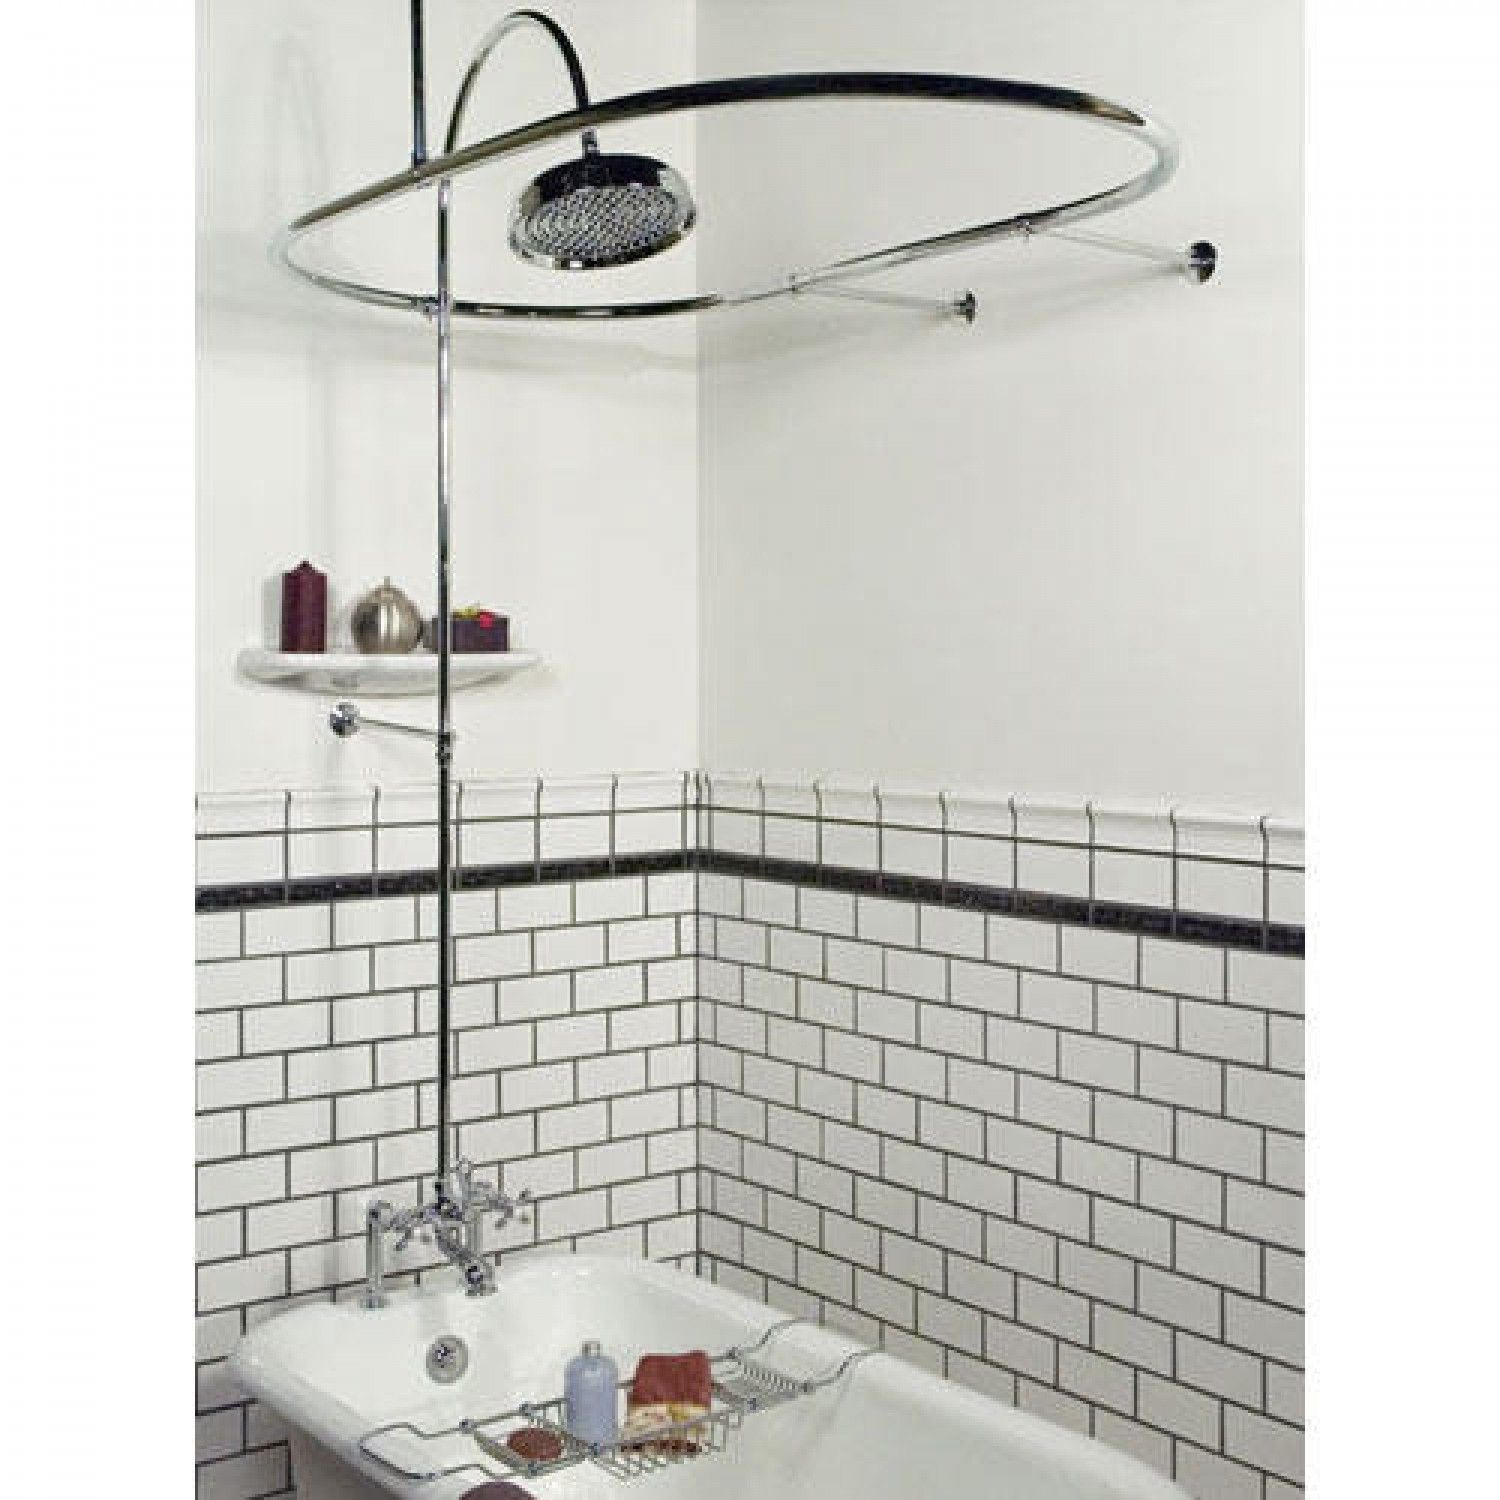 Sheffield Deck Mount Hotel Style Shower Conversion Kit Clawfoot